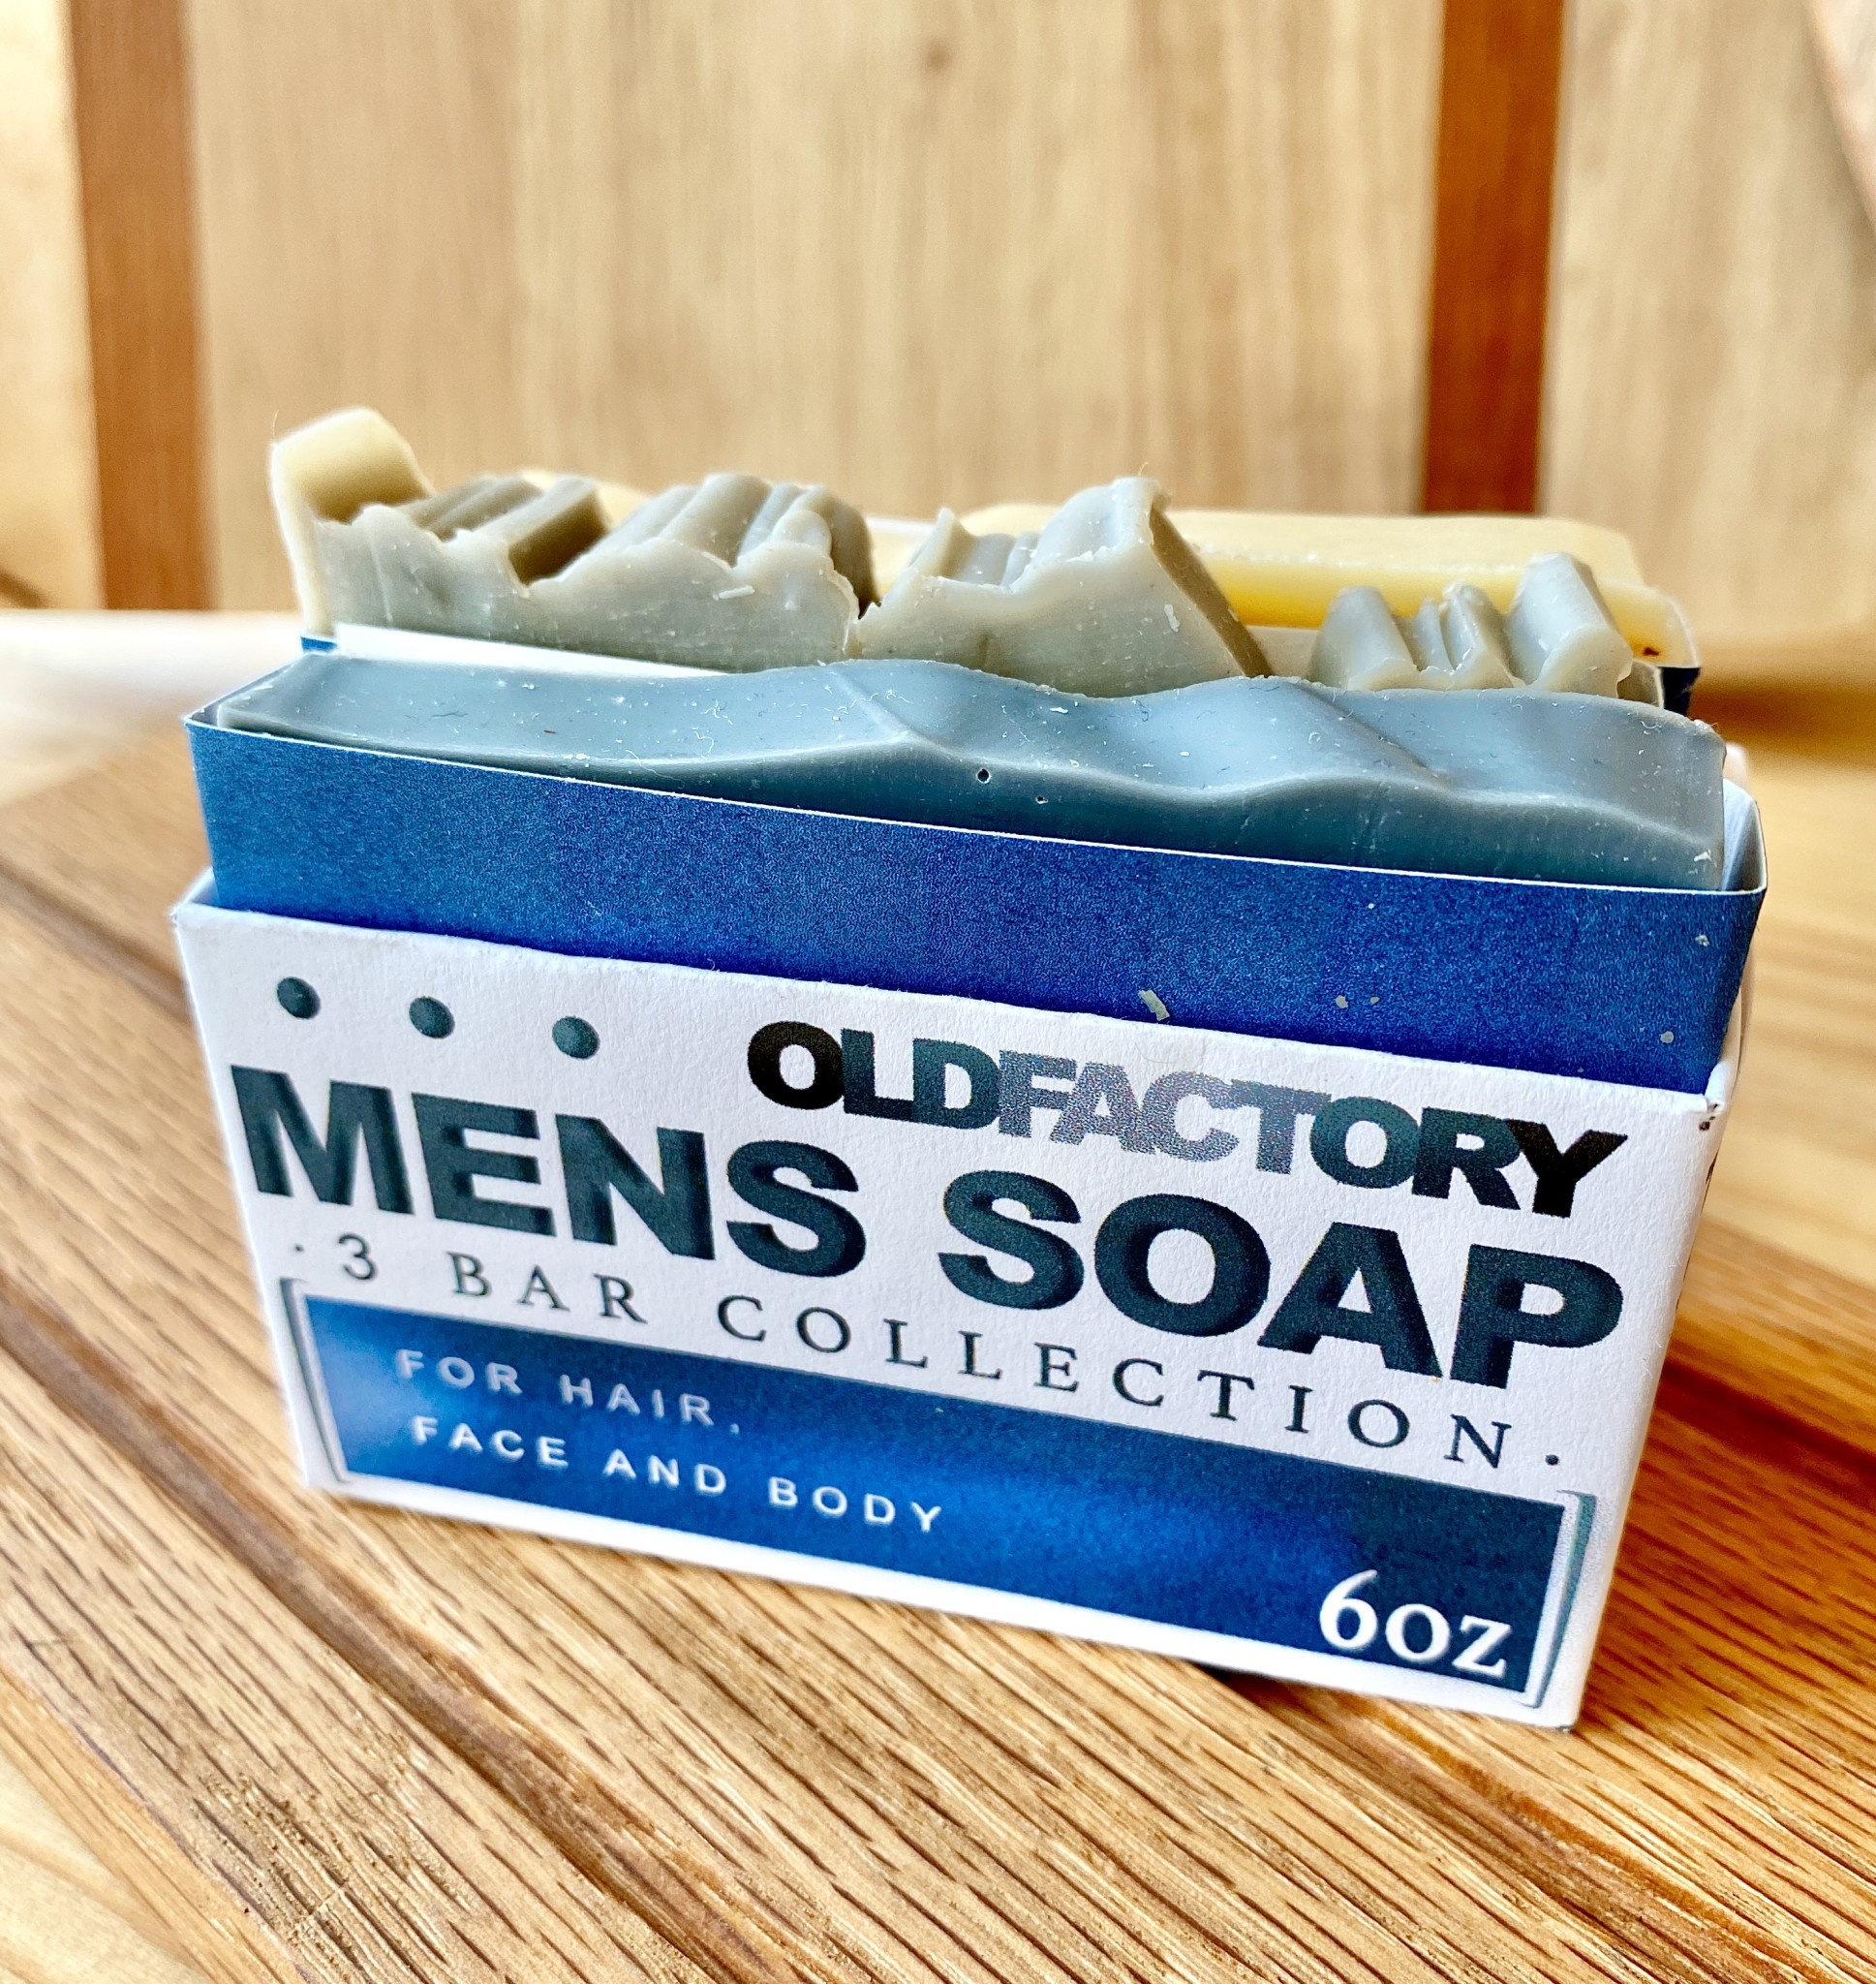 Old Factory Soap Company Men's Soap Sampler: 3 Bar Collection